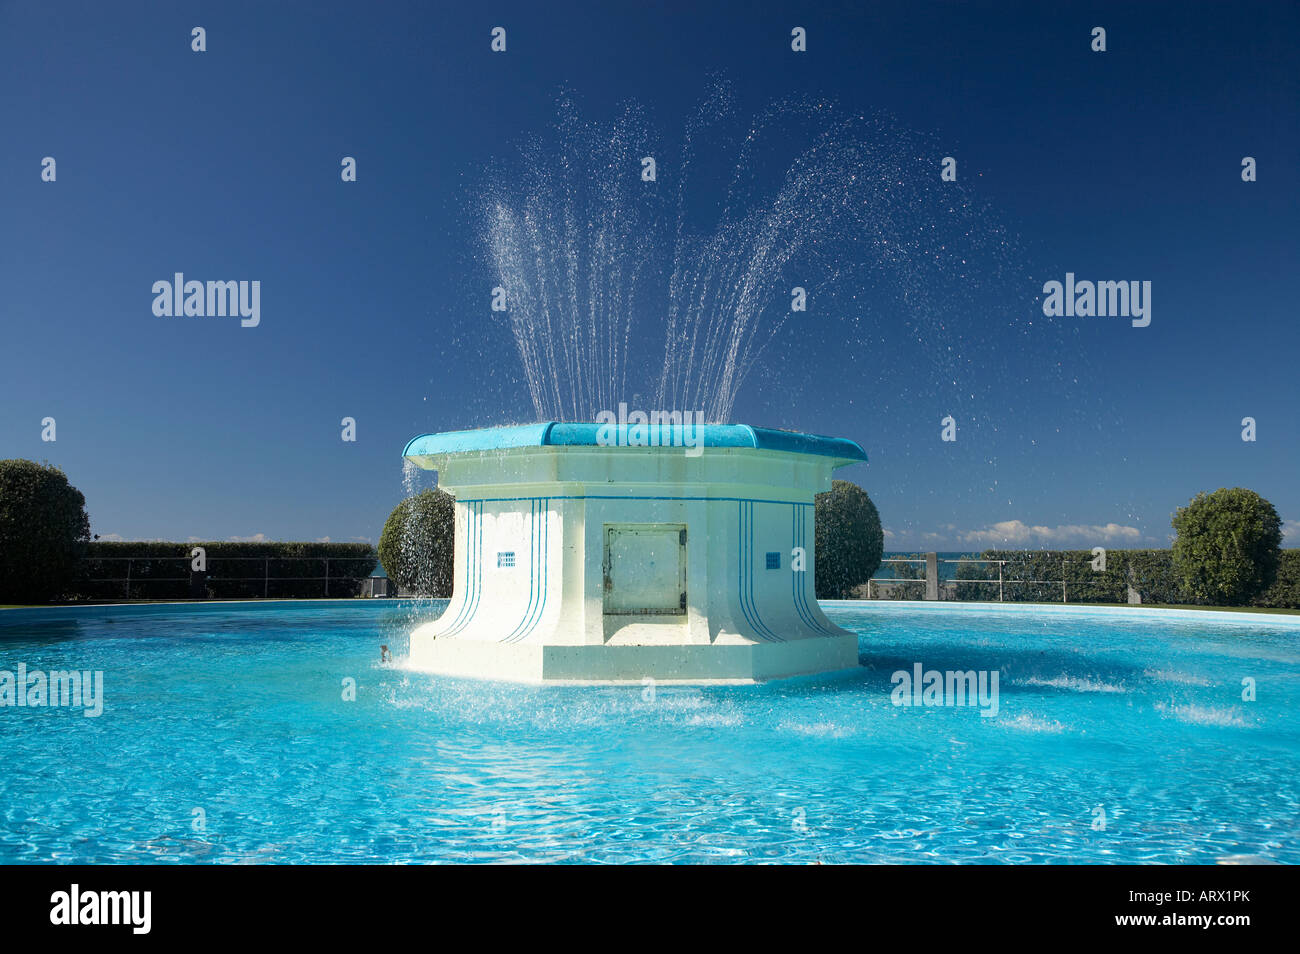 Water fountains outdoor new zealand - Tom Parker Fountain Marine Parade Napier Hawkes Bay North Island New Zealand Stock Image